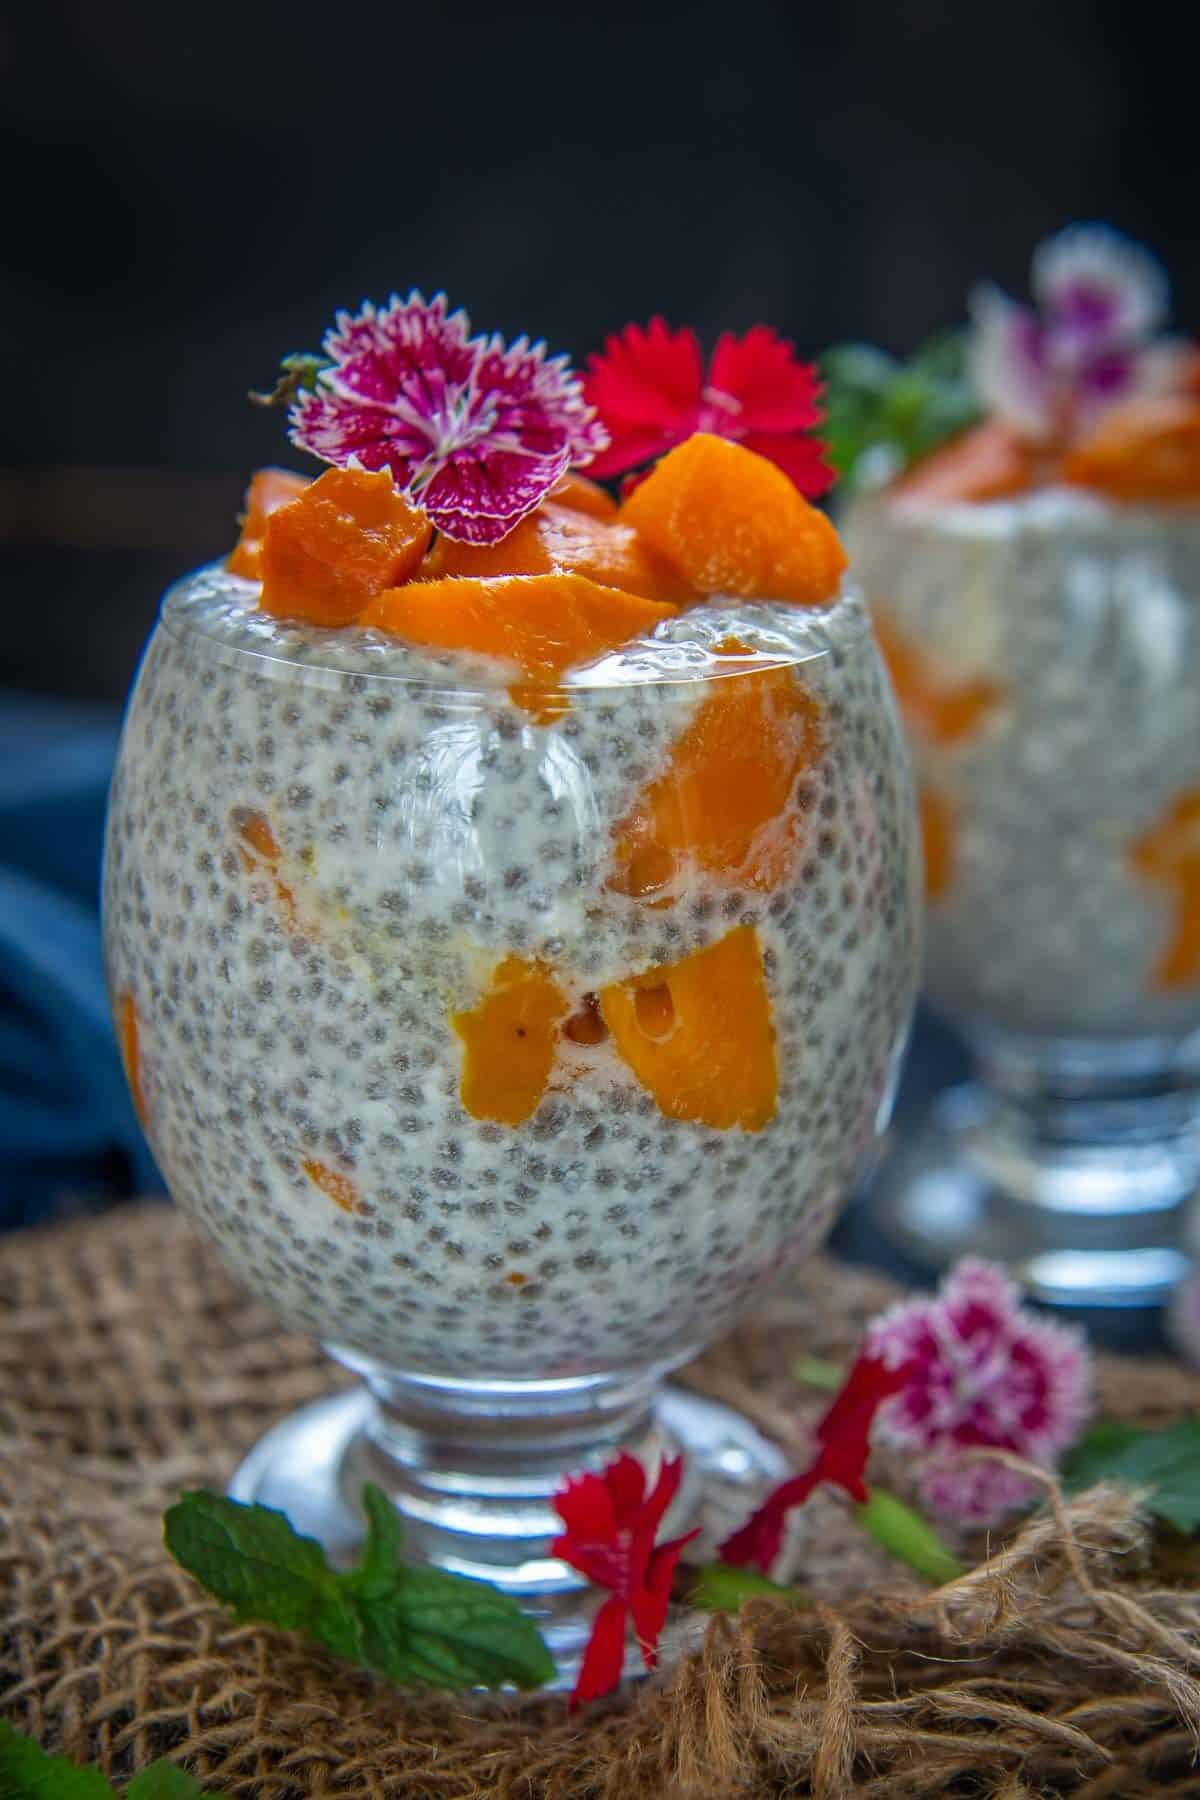 Mango chia pudding served in a glass.